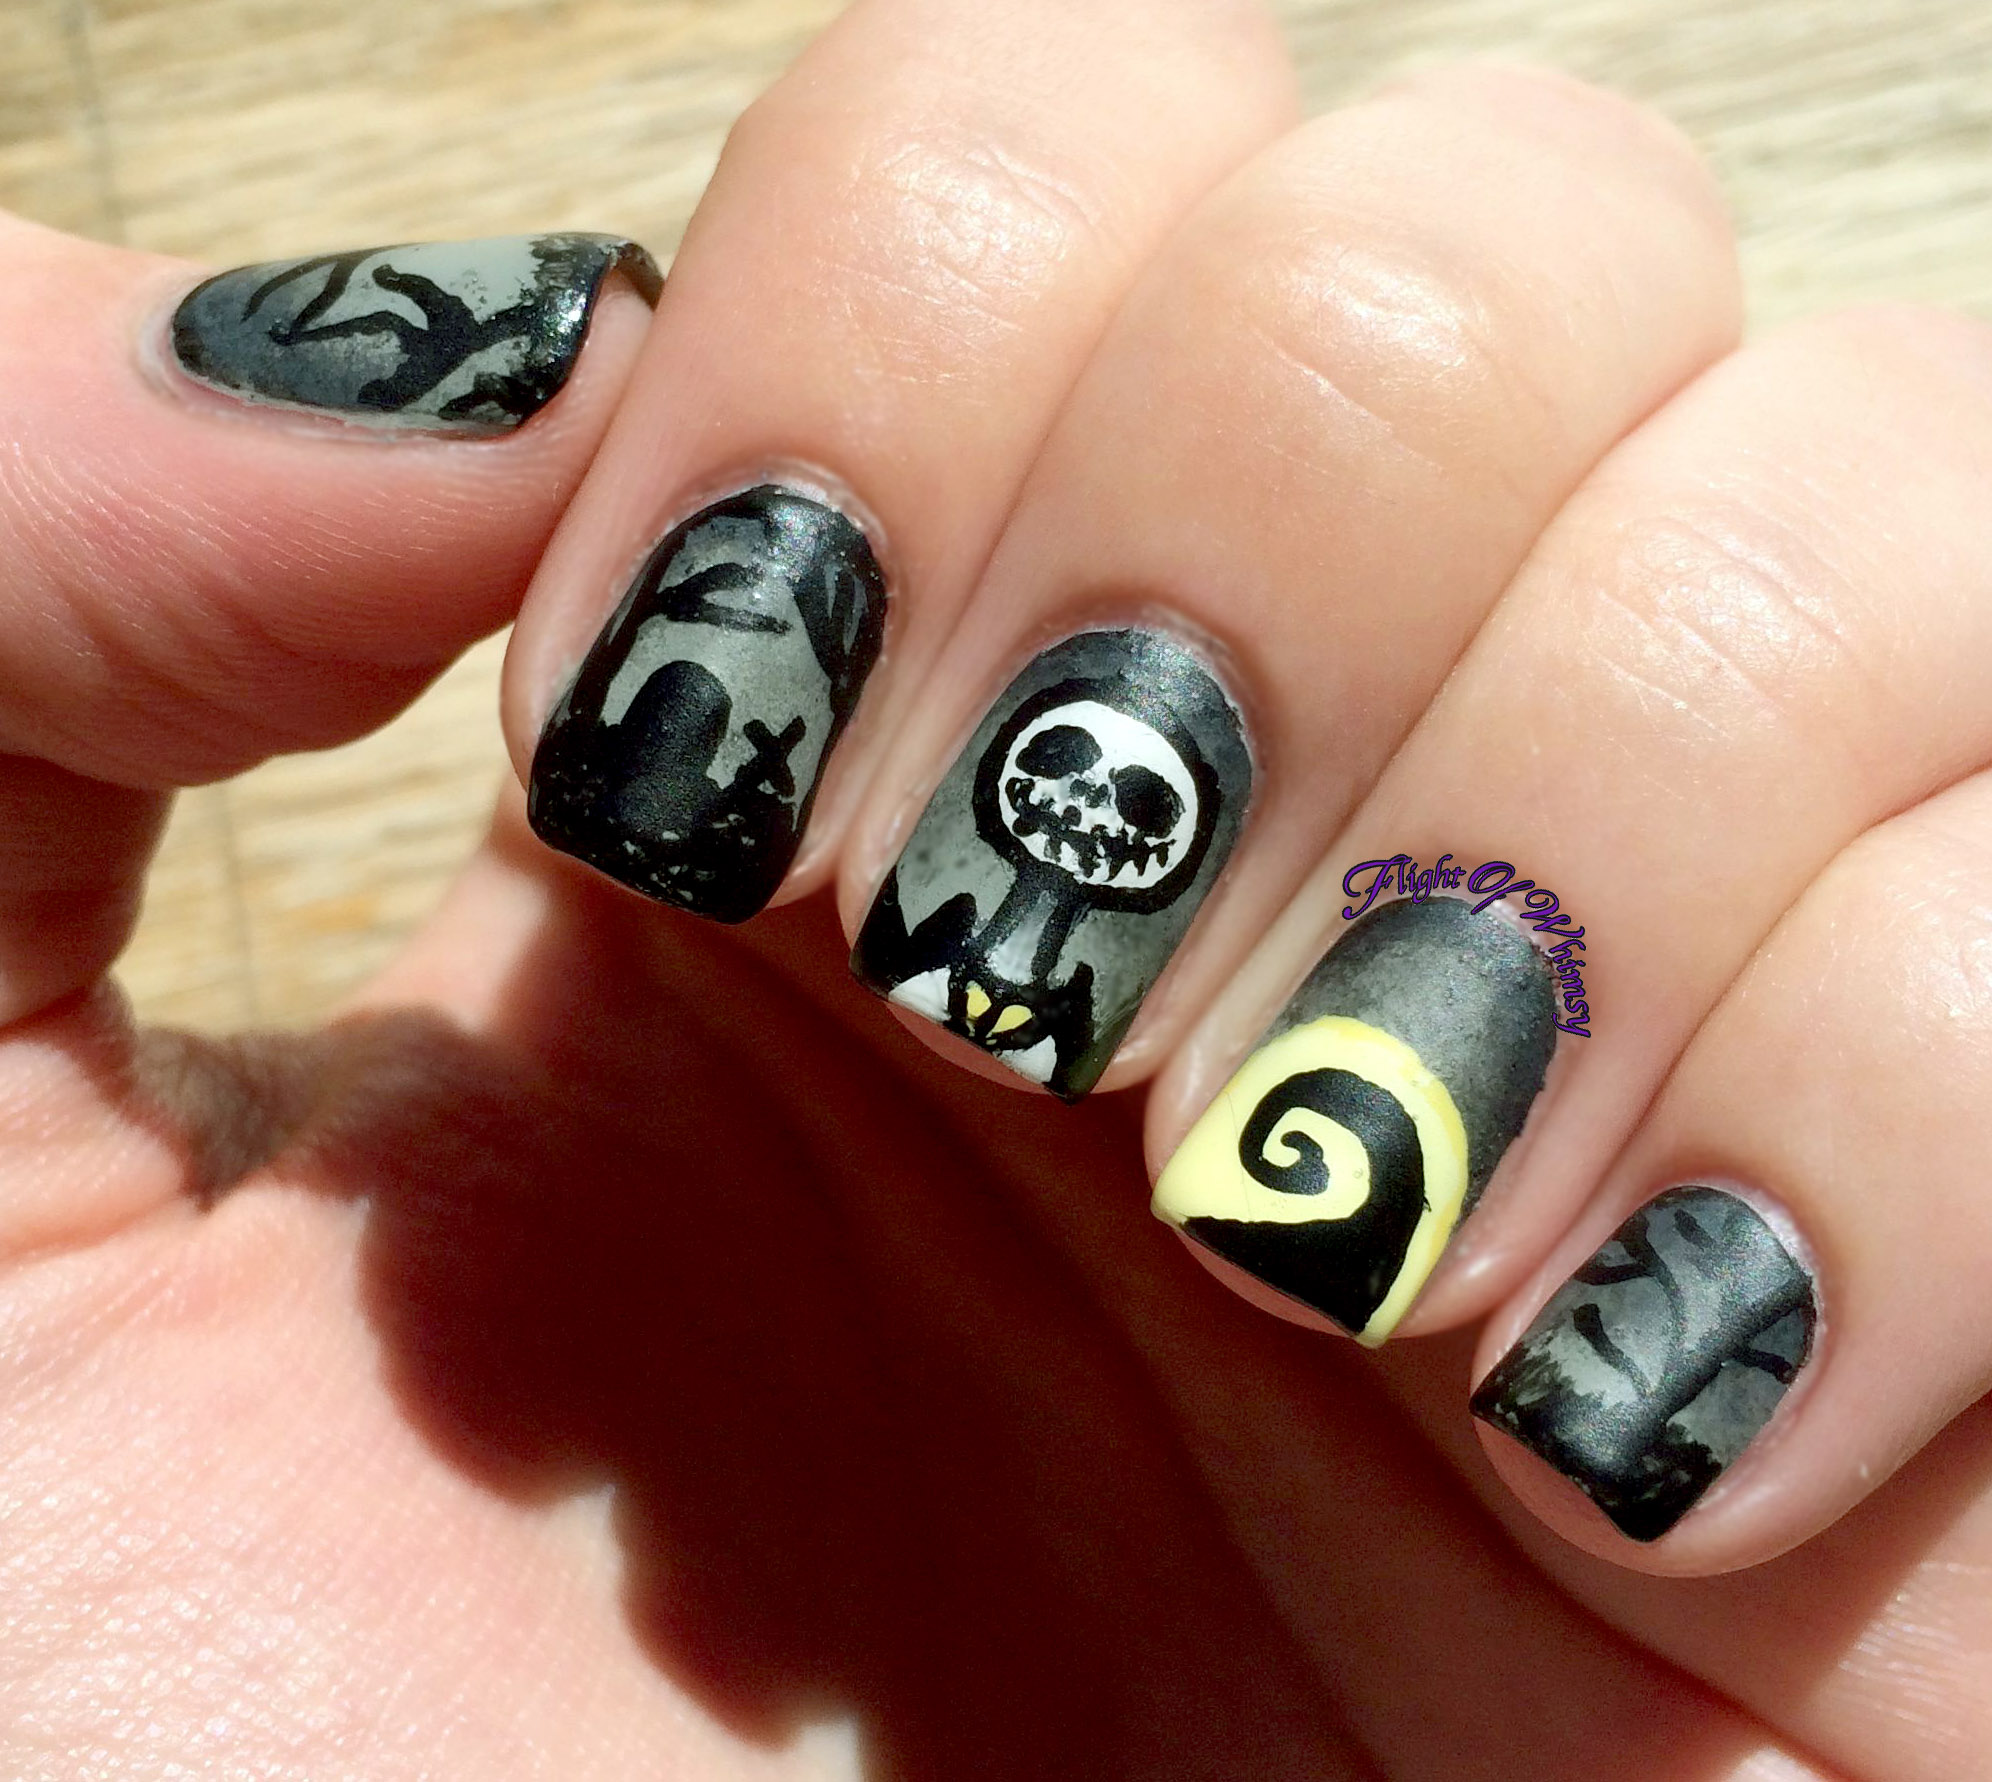 i have seen quite a few nightmare before christmas manis floating around but hers was the first to catch my eye so i went with it